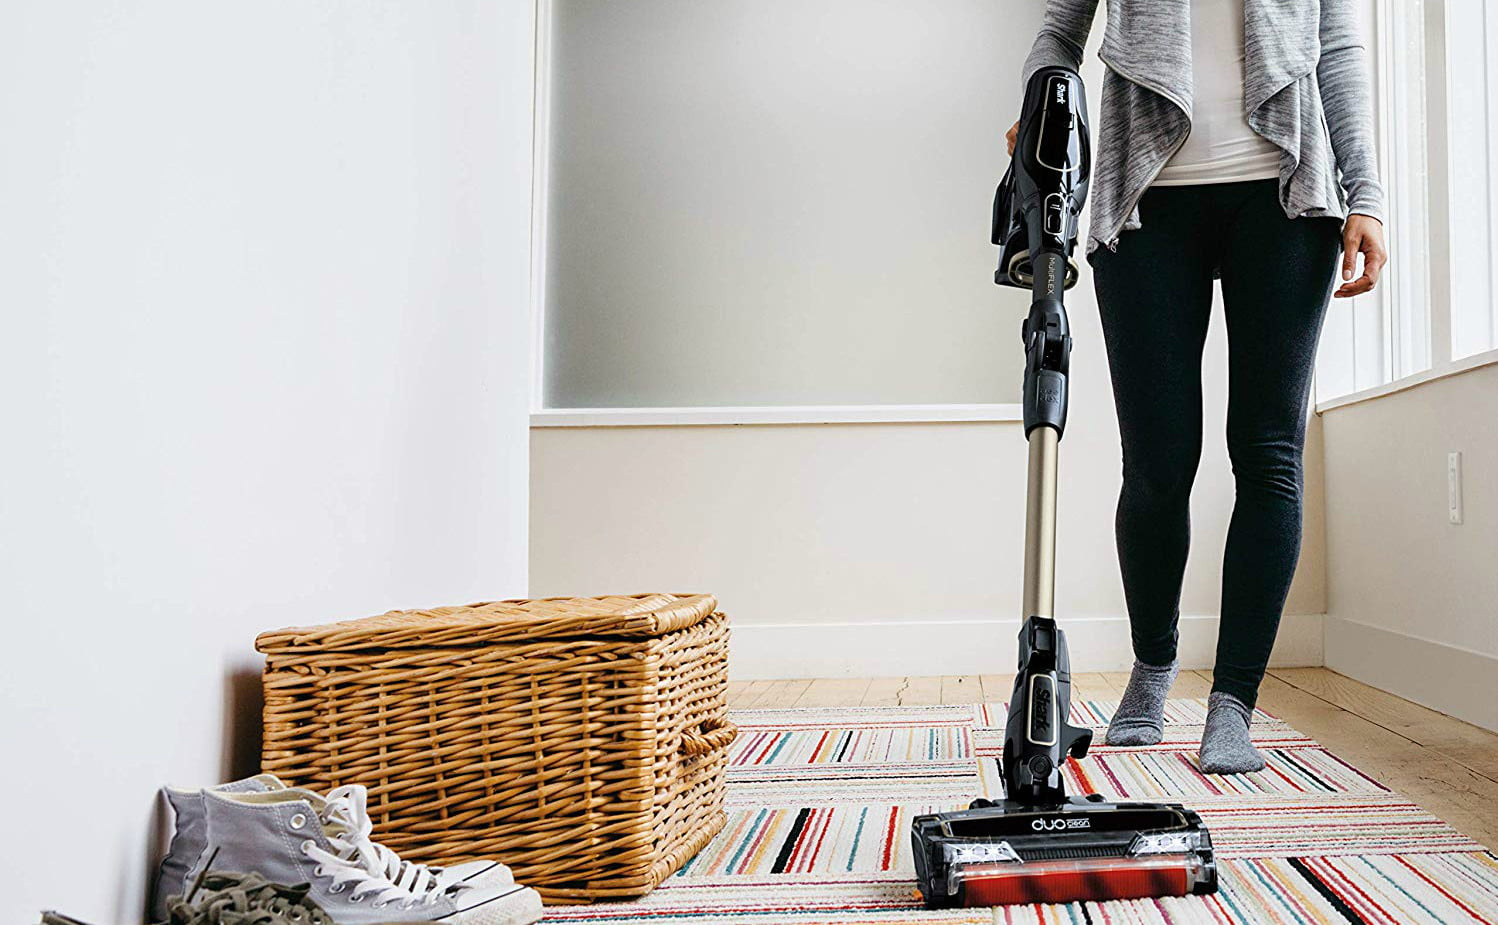 Amazon slashes the price of the Shark ION F80 cordless stick vacuum by $150